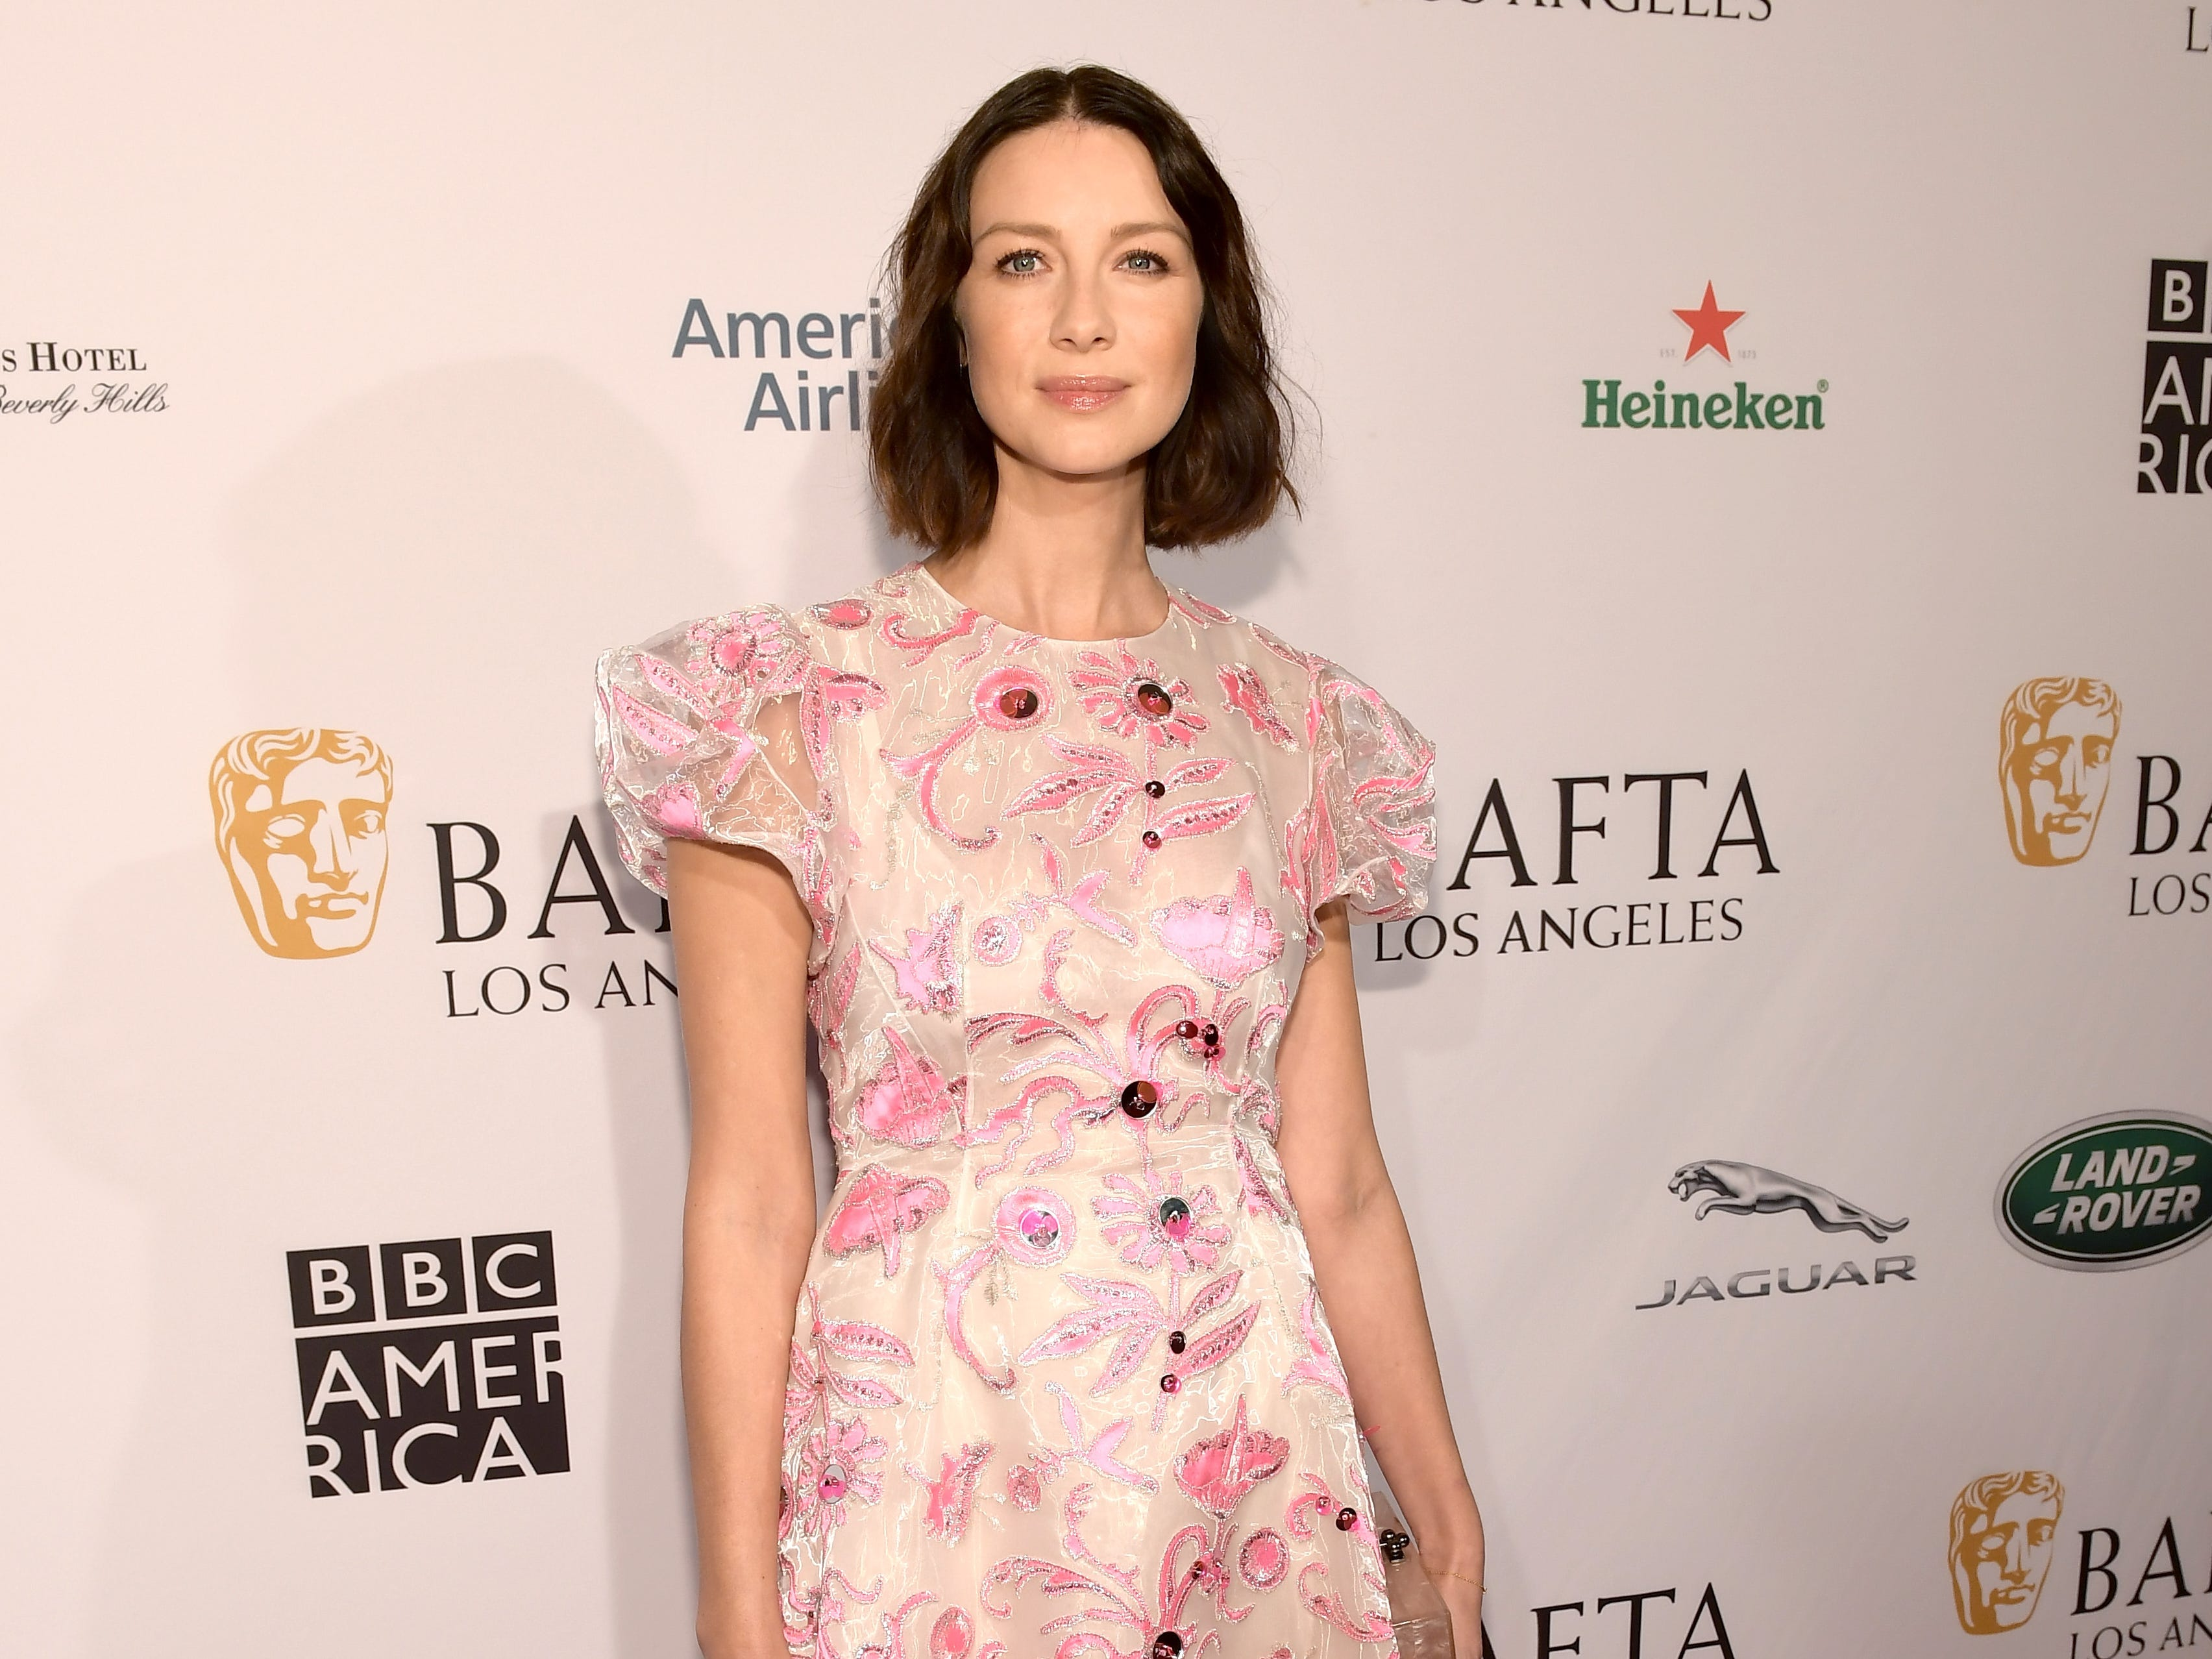 LOS ANGELES, CA - JANUARY 05:  Caitriona Balfe attends The BAFTA Los Angeles Tea Party at Four Seasons Hotel Los Angeles at Beverly Hills on January 5, 2019 in Los Angeles, California.  (Photo by Matt Winkelmeyer/Getty Images) ORG XMIT: 775256316 ORIG FILE ID: 1077925380